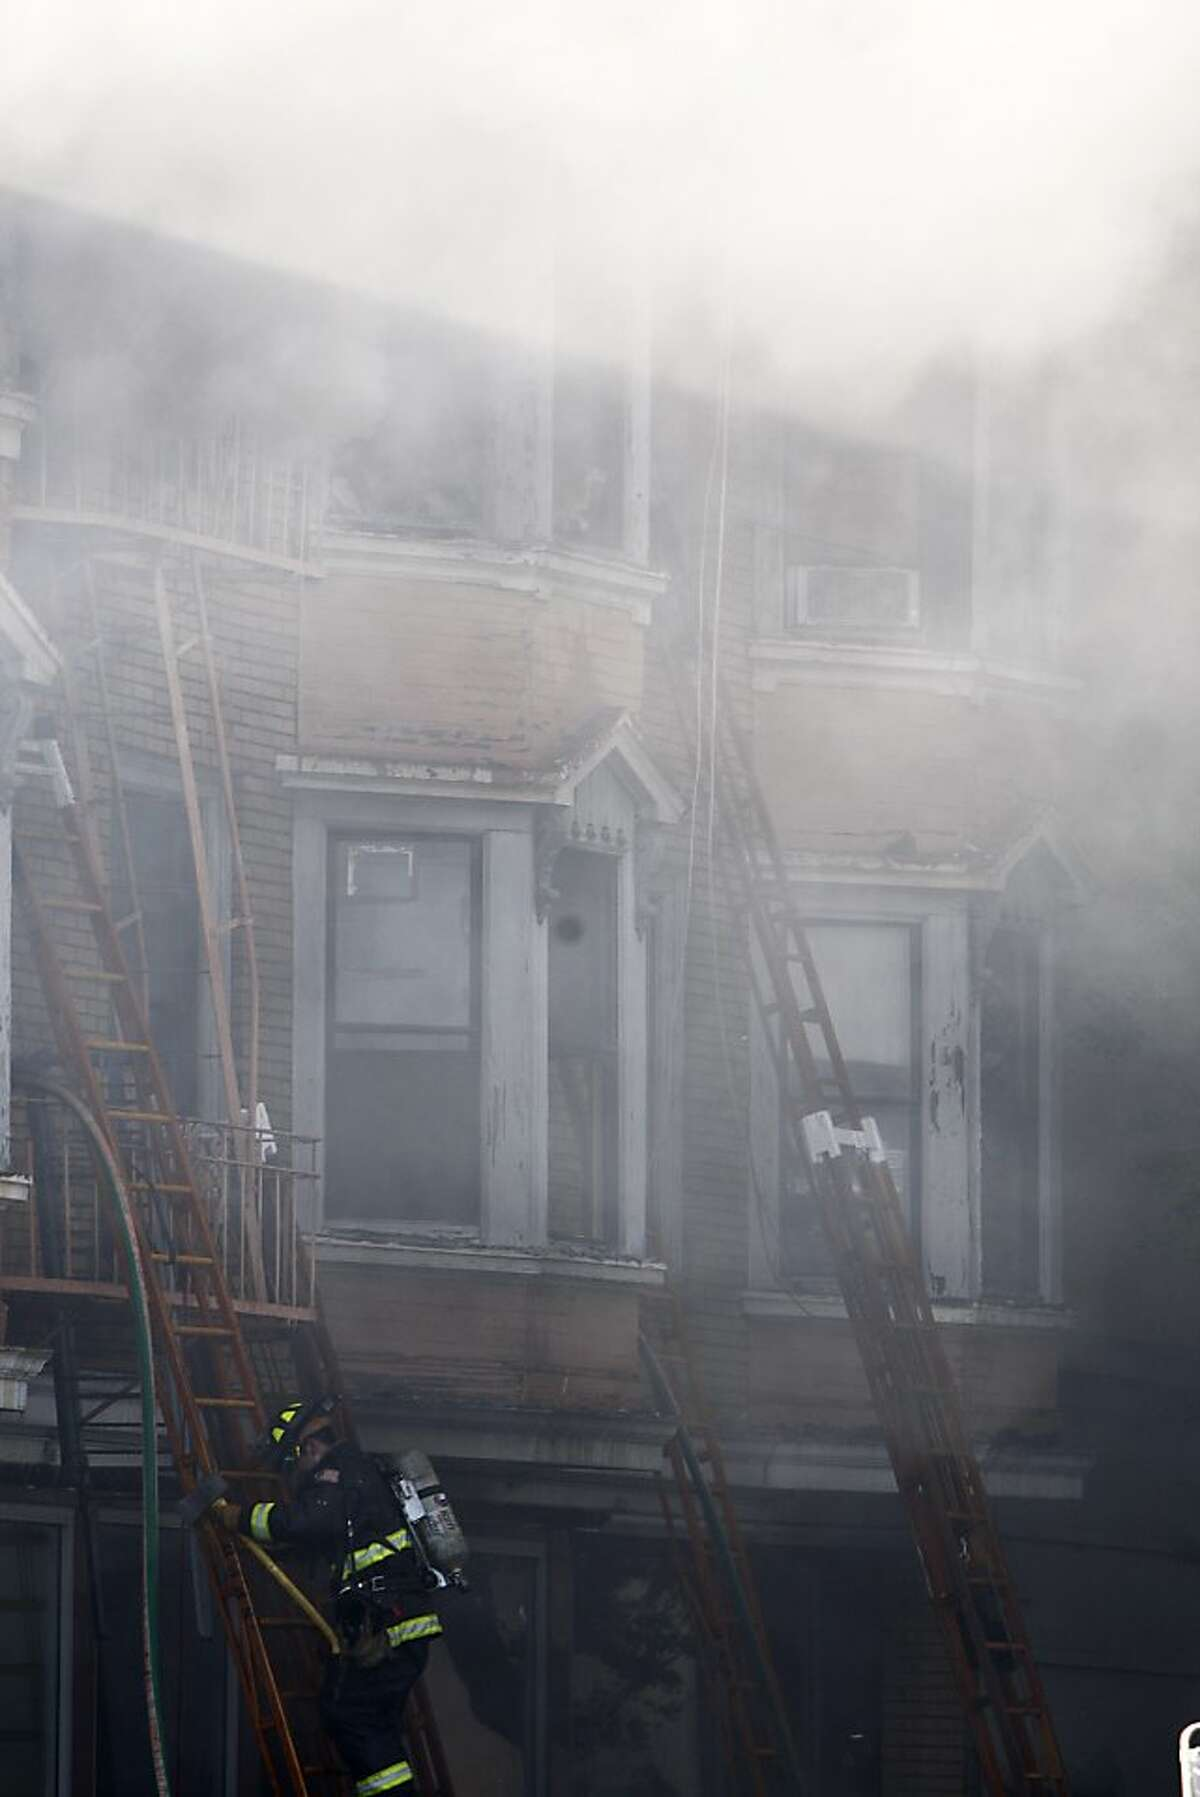 A four-alarm fire broke out at 1040 Folsom street in San Francisco on Wednesday, May 4, 2011.